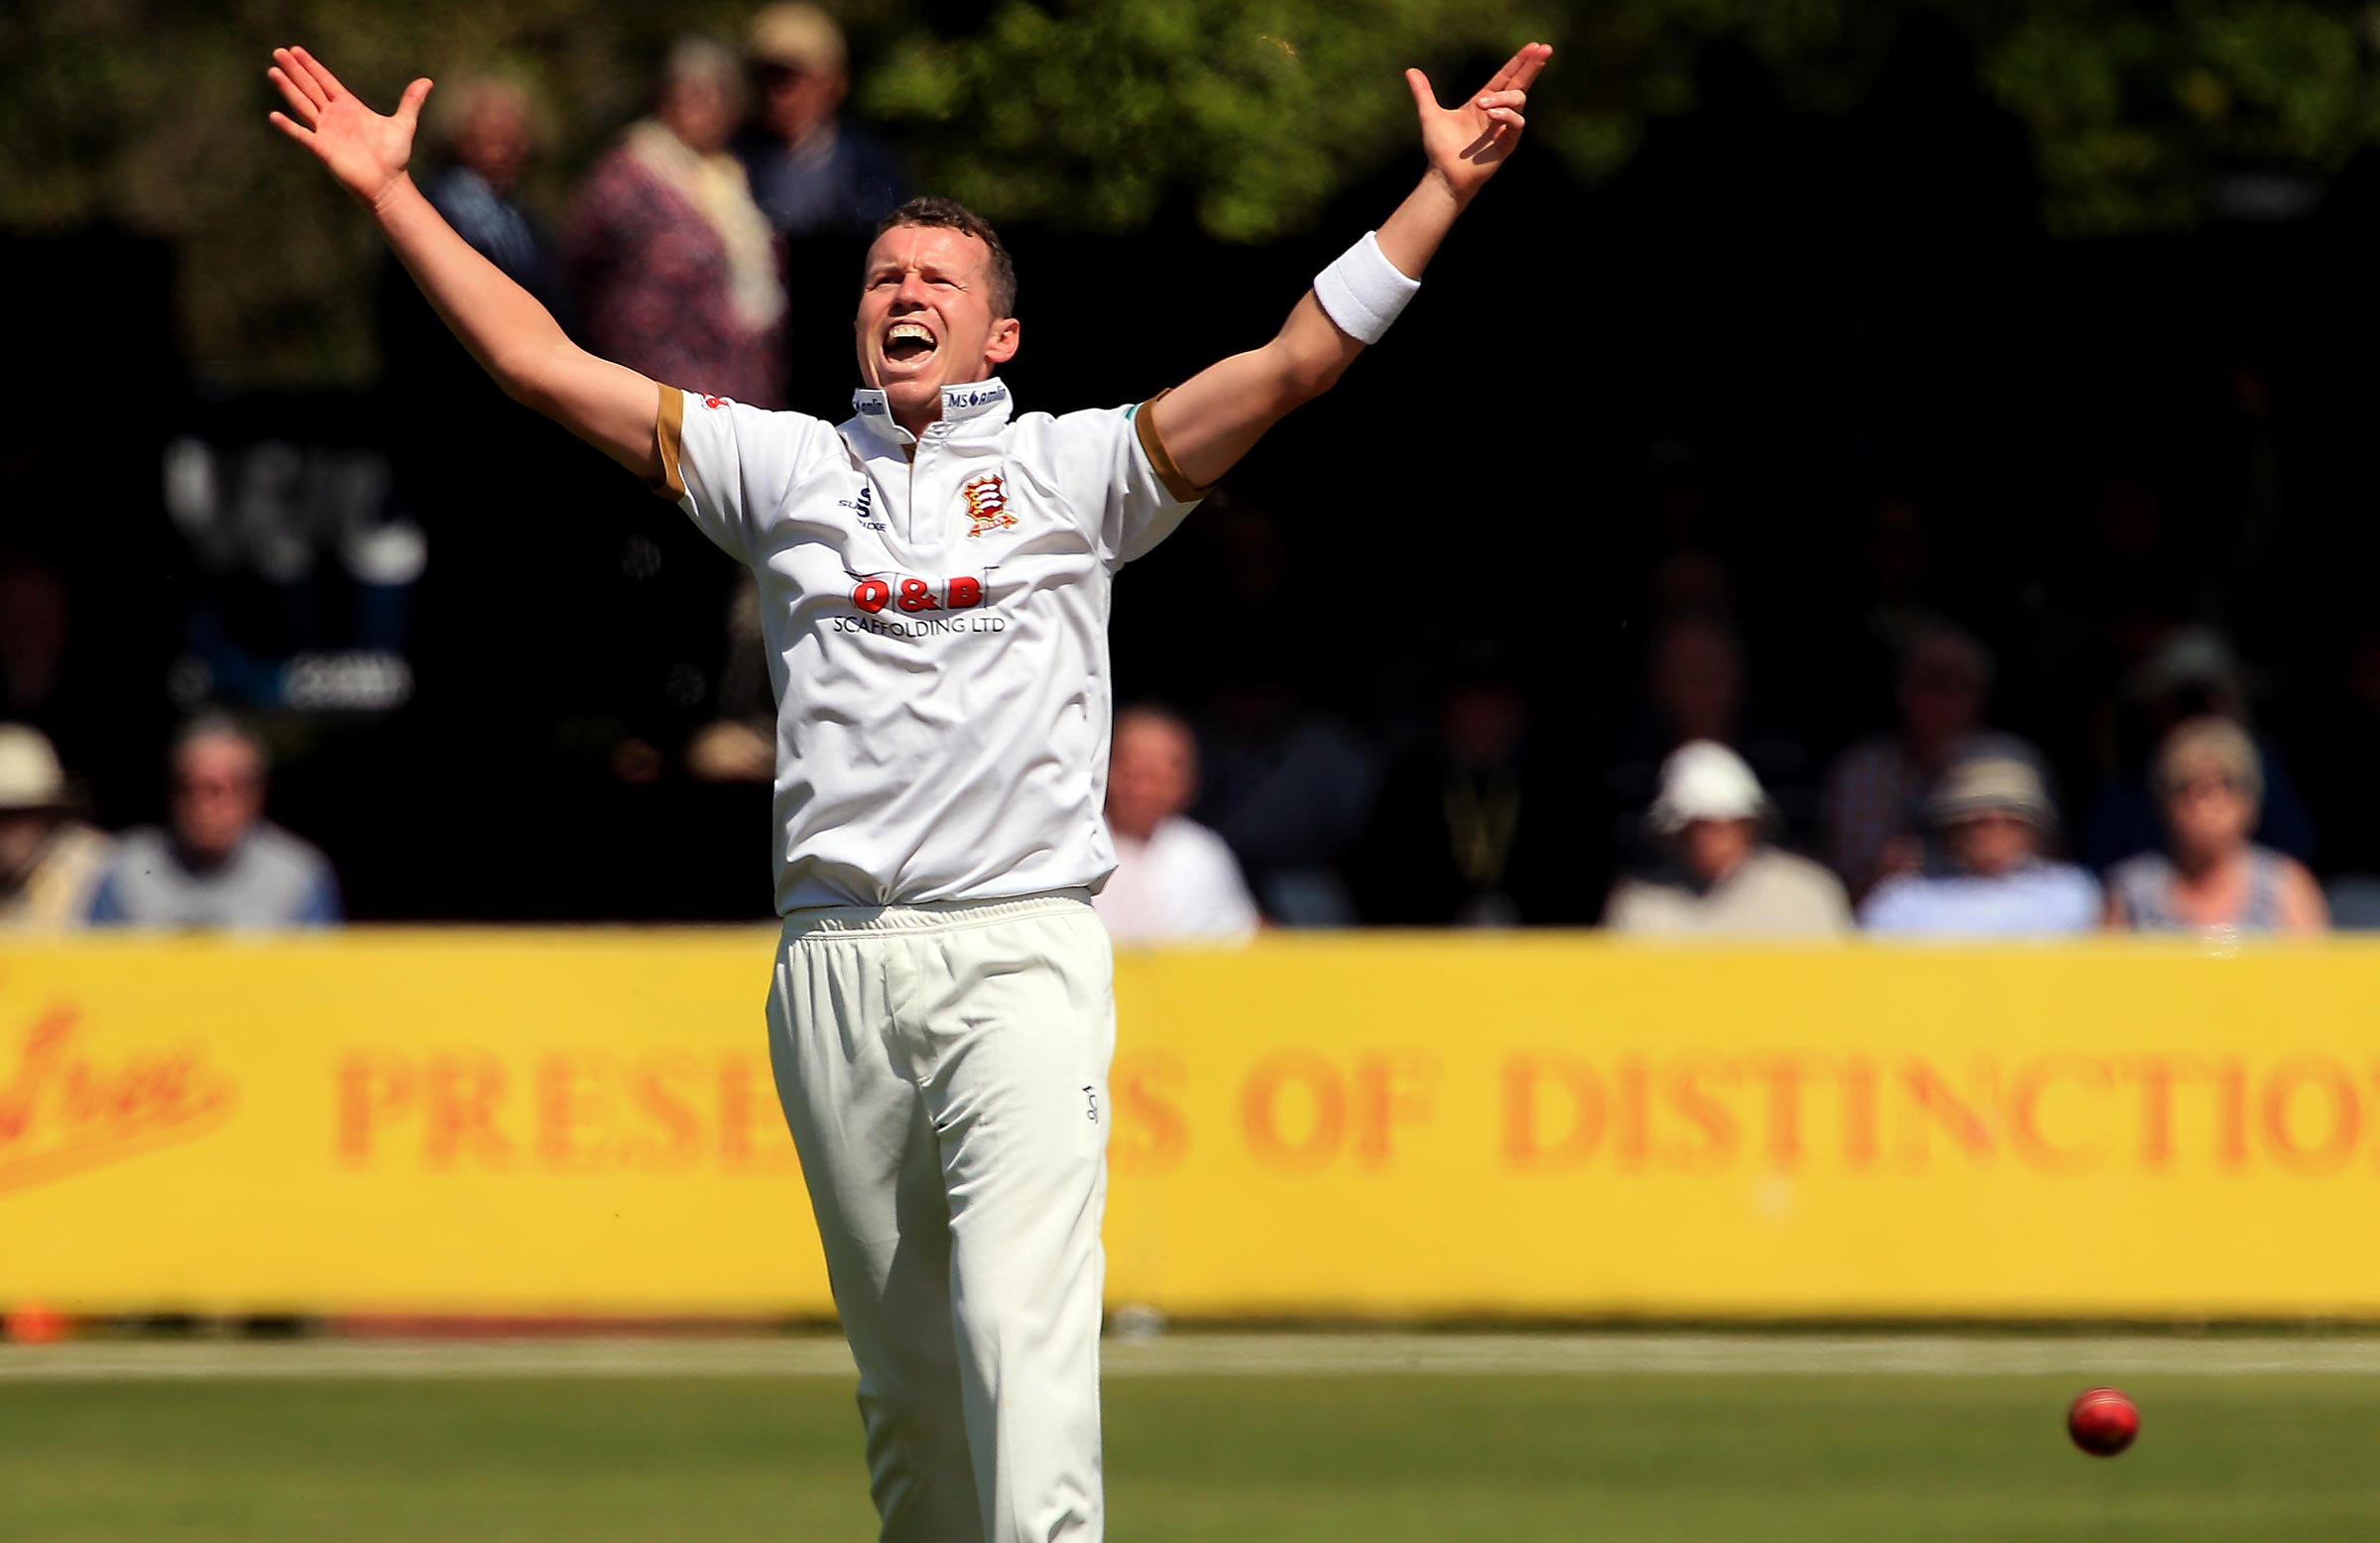 Peter Siddle will be back at Essex this year // Getty